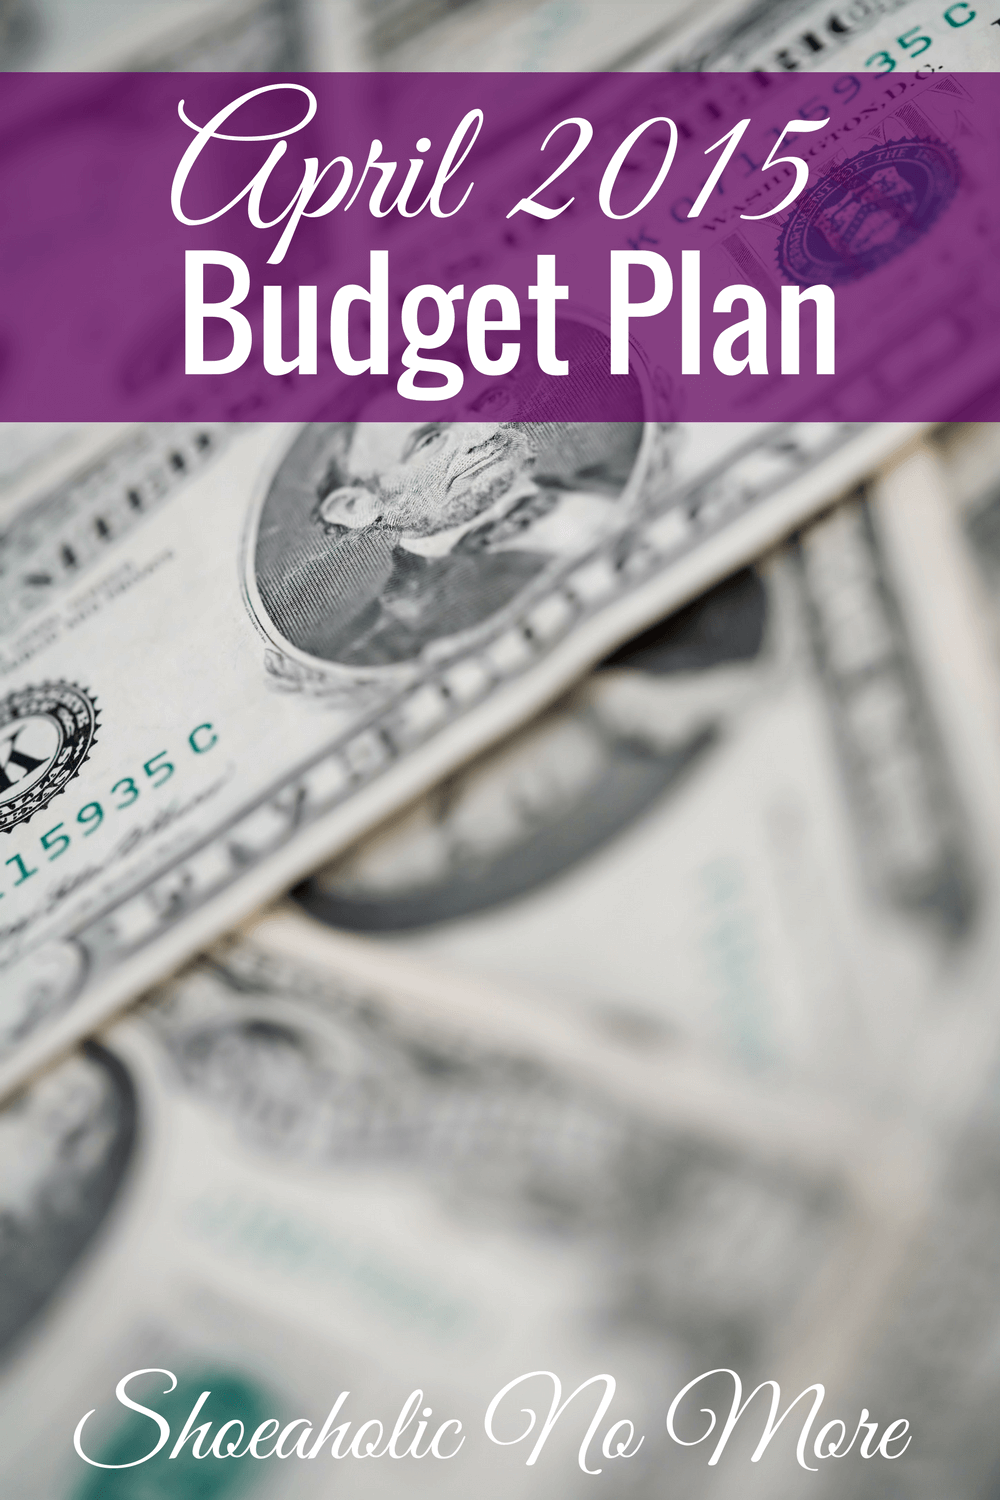 I wanted to share my monthly budget plan with you to show you that you can budget and make your money work for you!